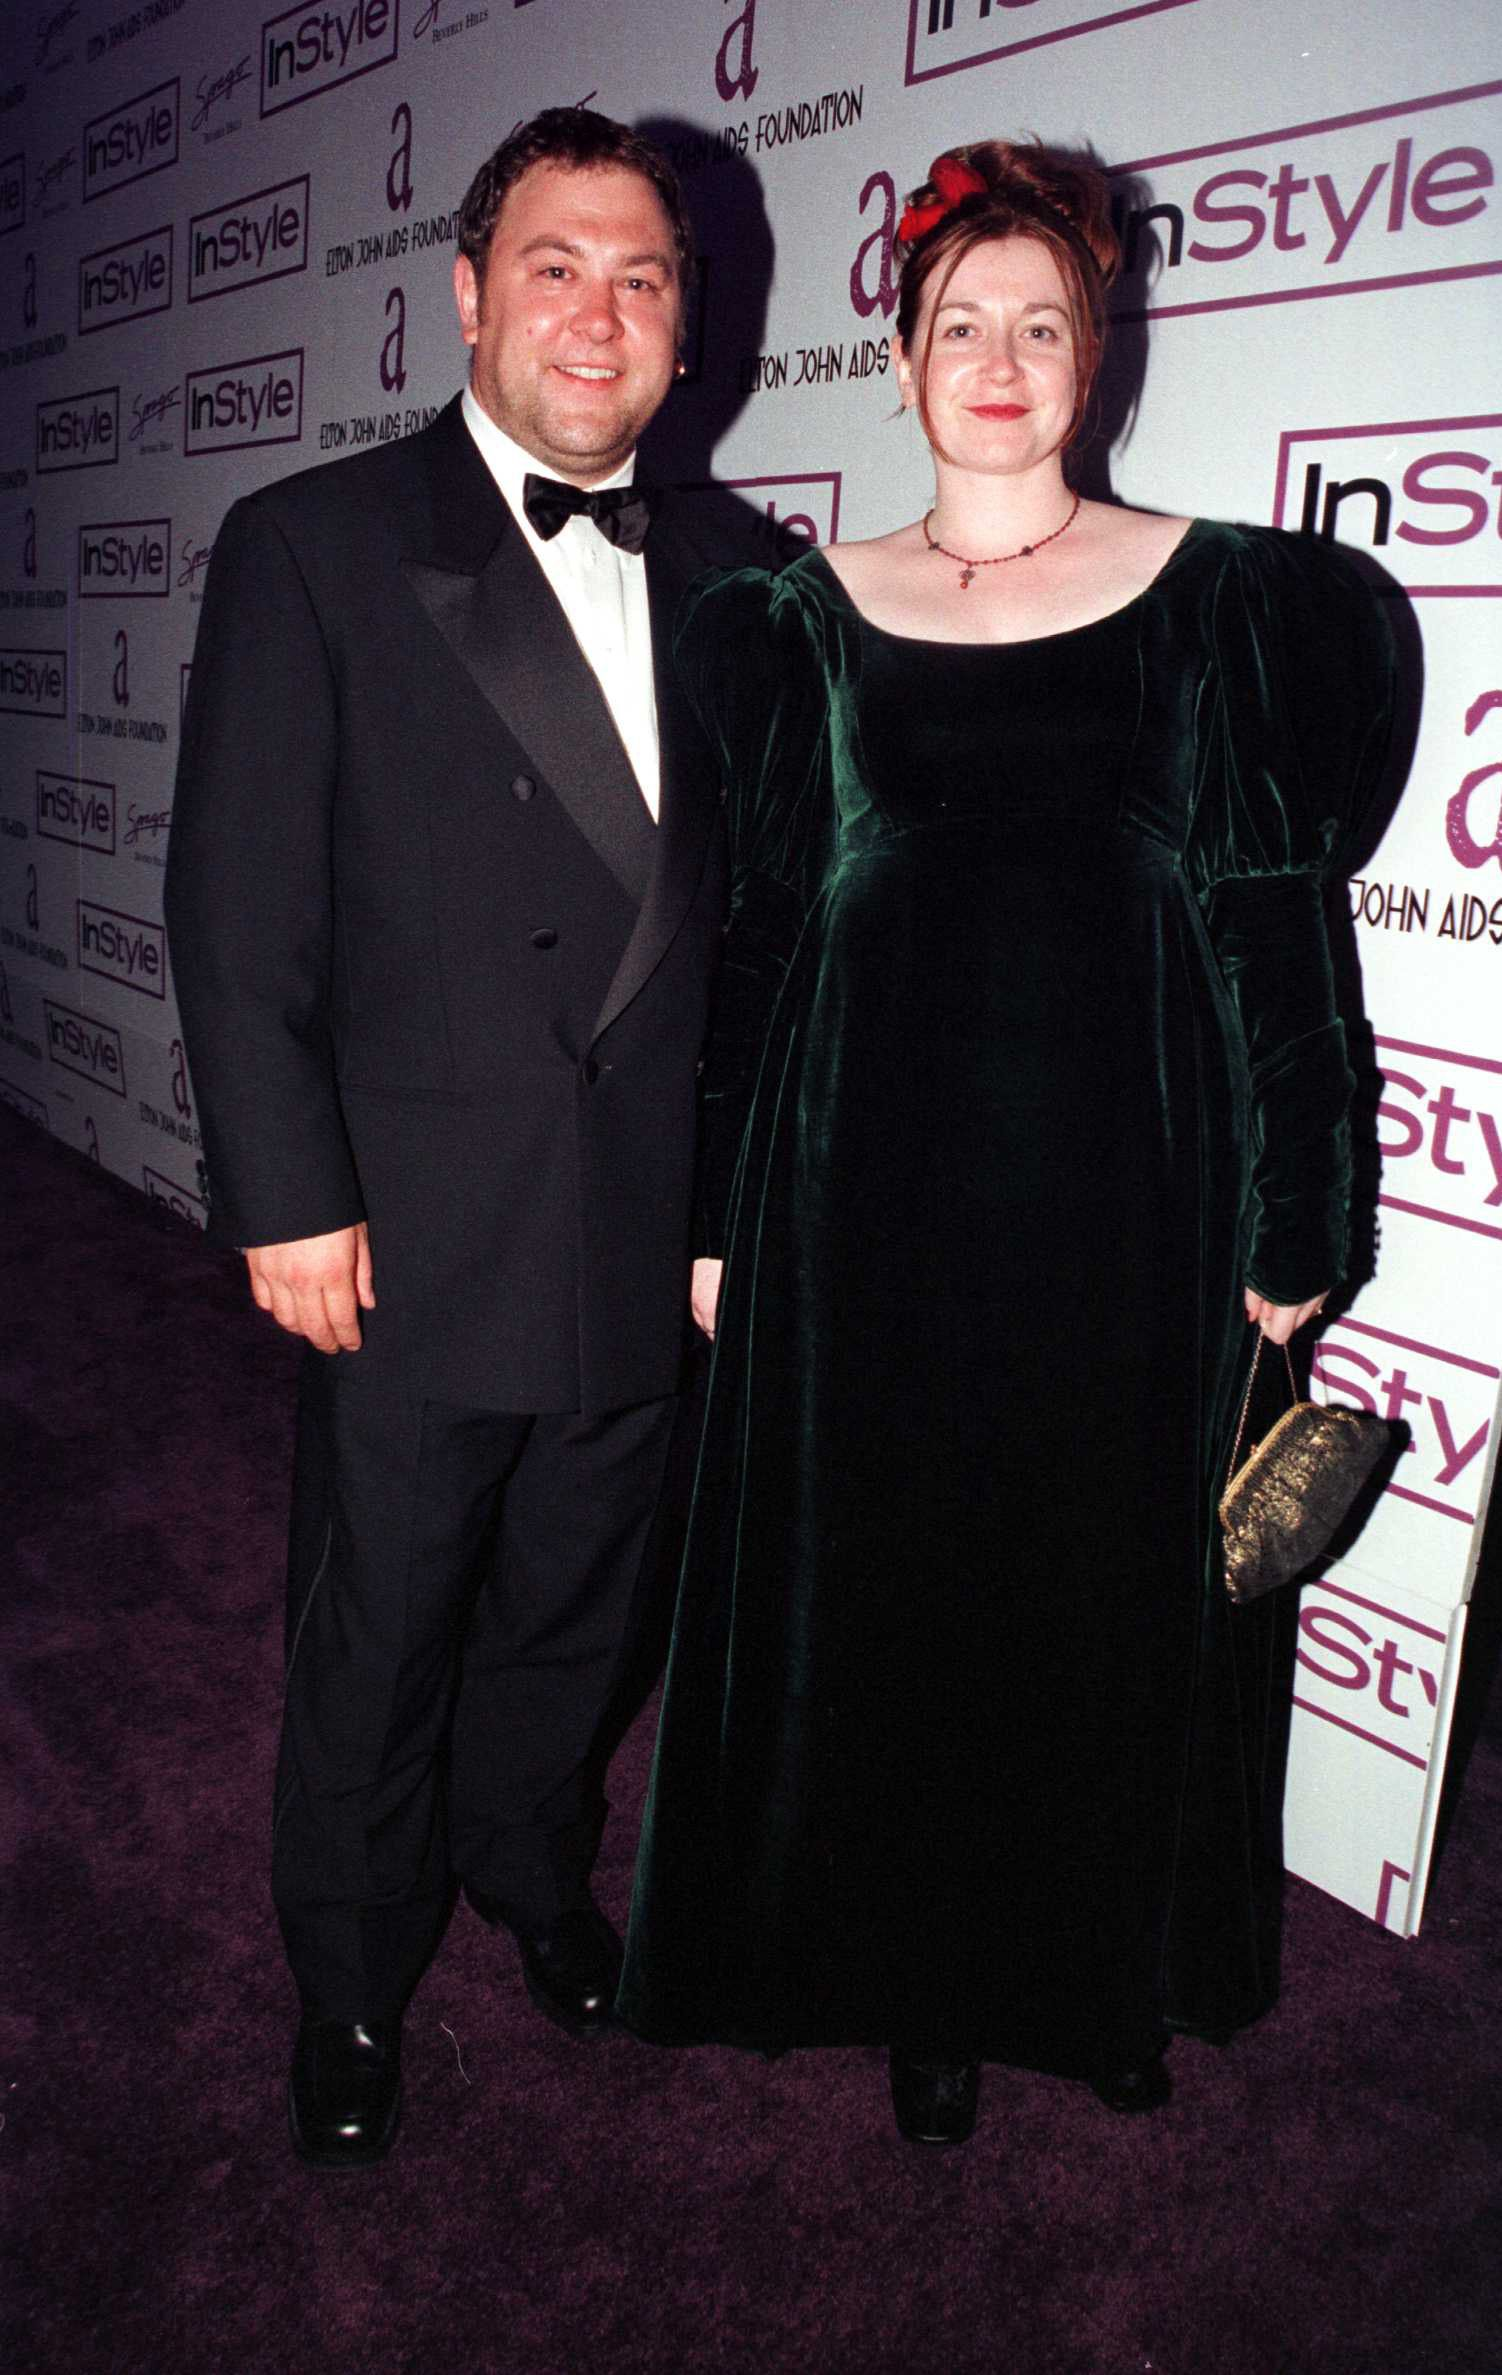 Mark Addy (Robert Baratheon) and Kelly Biggs These two have been married since 1996.